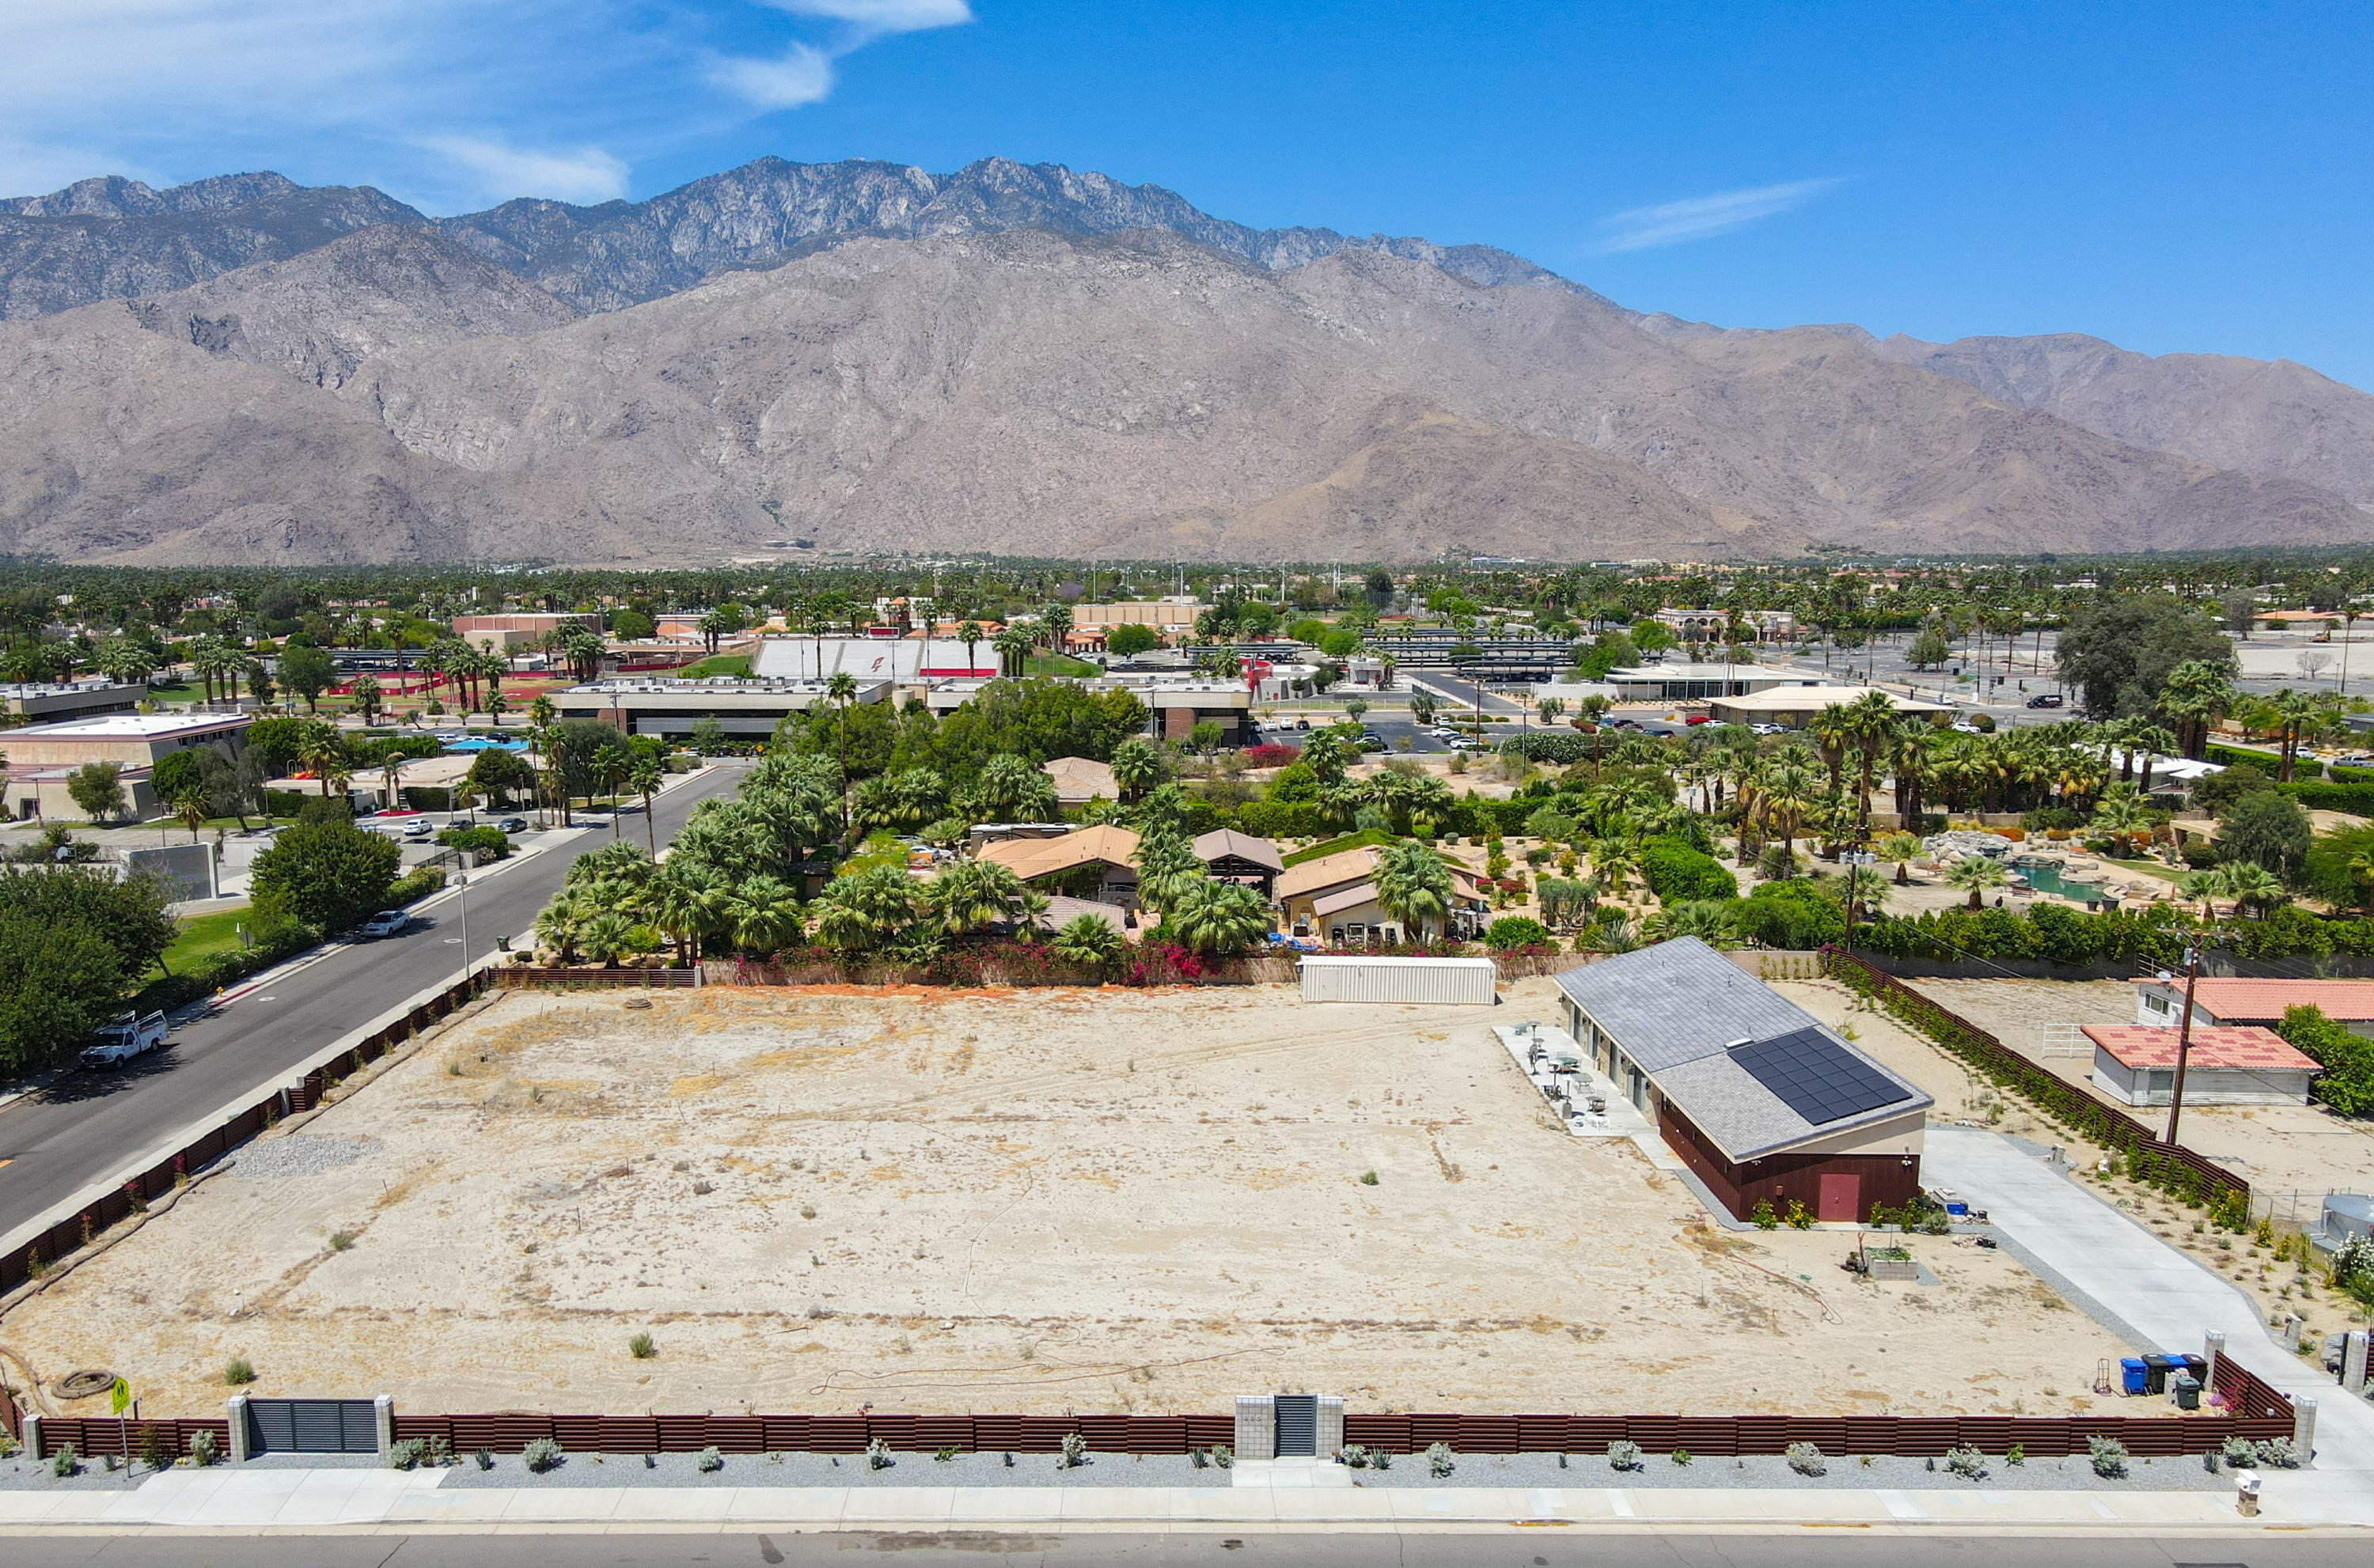 Amazing development opportunity for a private estate. Nearly 1.5 acres with unobstructed breath taking views in the heart of Palm Springs. This site is ready to go and already has a 1606 SF 2 bdrm 3 bath home Built in 2018.  Oversized 2 car garage with 2nd floor significant, carpeted/AC storage space.  Including a 250 lb load dumb-waiter lift.  All the ''heavy lifting'' has been done in order to easily build a dream main house, pool, spa, gardens and recreational areas including possible tennis court, pickle ball court and large 2nd garage and parking spaces.  Priced extremely well for all that is already here including this large lot.  Entire property is walled & fenced (CorTen steel.)  Current home has 2x6 construction and is fully insulated  (R-52 ceilings/ R-32 walls) 28-panel/Panasonic OWNED solar system  & space to add 21 more.   Separate grey water sewage system   plus Dual Potable water systems from Desert Water Agency AND the HOA-owned private well with tier 1 DWA rates for low-cost water expense for landscaping & home use. Guest house has both systems.  Two tankless water heaters. 600 Amp electric system, 30 Amp RV H2O/water/sewage dump at driveway, 240V electric car outlet & 3rd breezeway entry bathroom for future pool use and  for RV guests. There are simply no other flat, ready-to-build lots in Palm Springs available at such a value!  Forever mountain views & even zoned for horses! Not far from downtown and easy access to east valley cities too. A Real Find